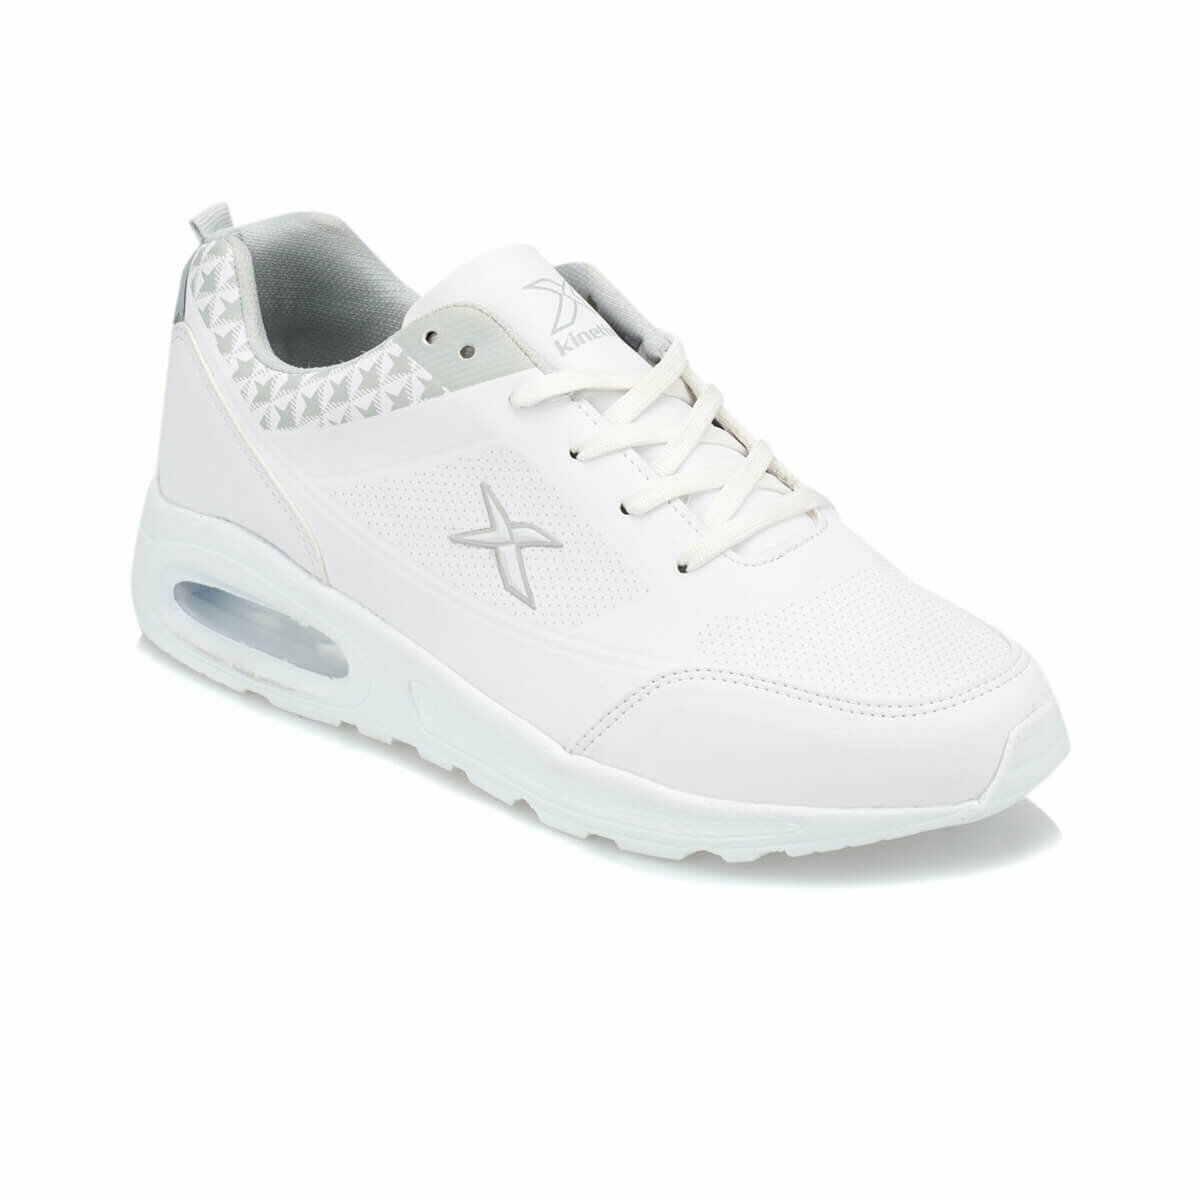 FLO T M White Men 'S Sneaker Shoes KINETIX